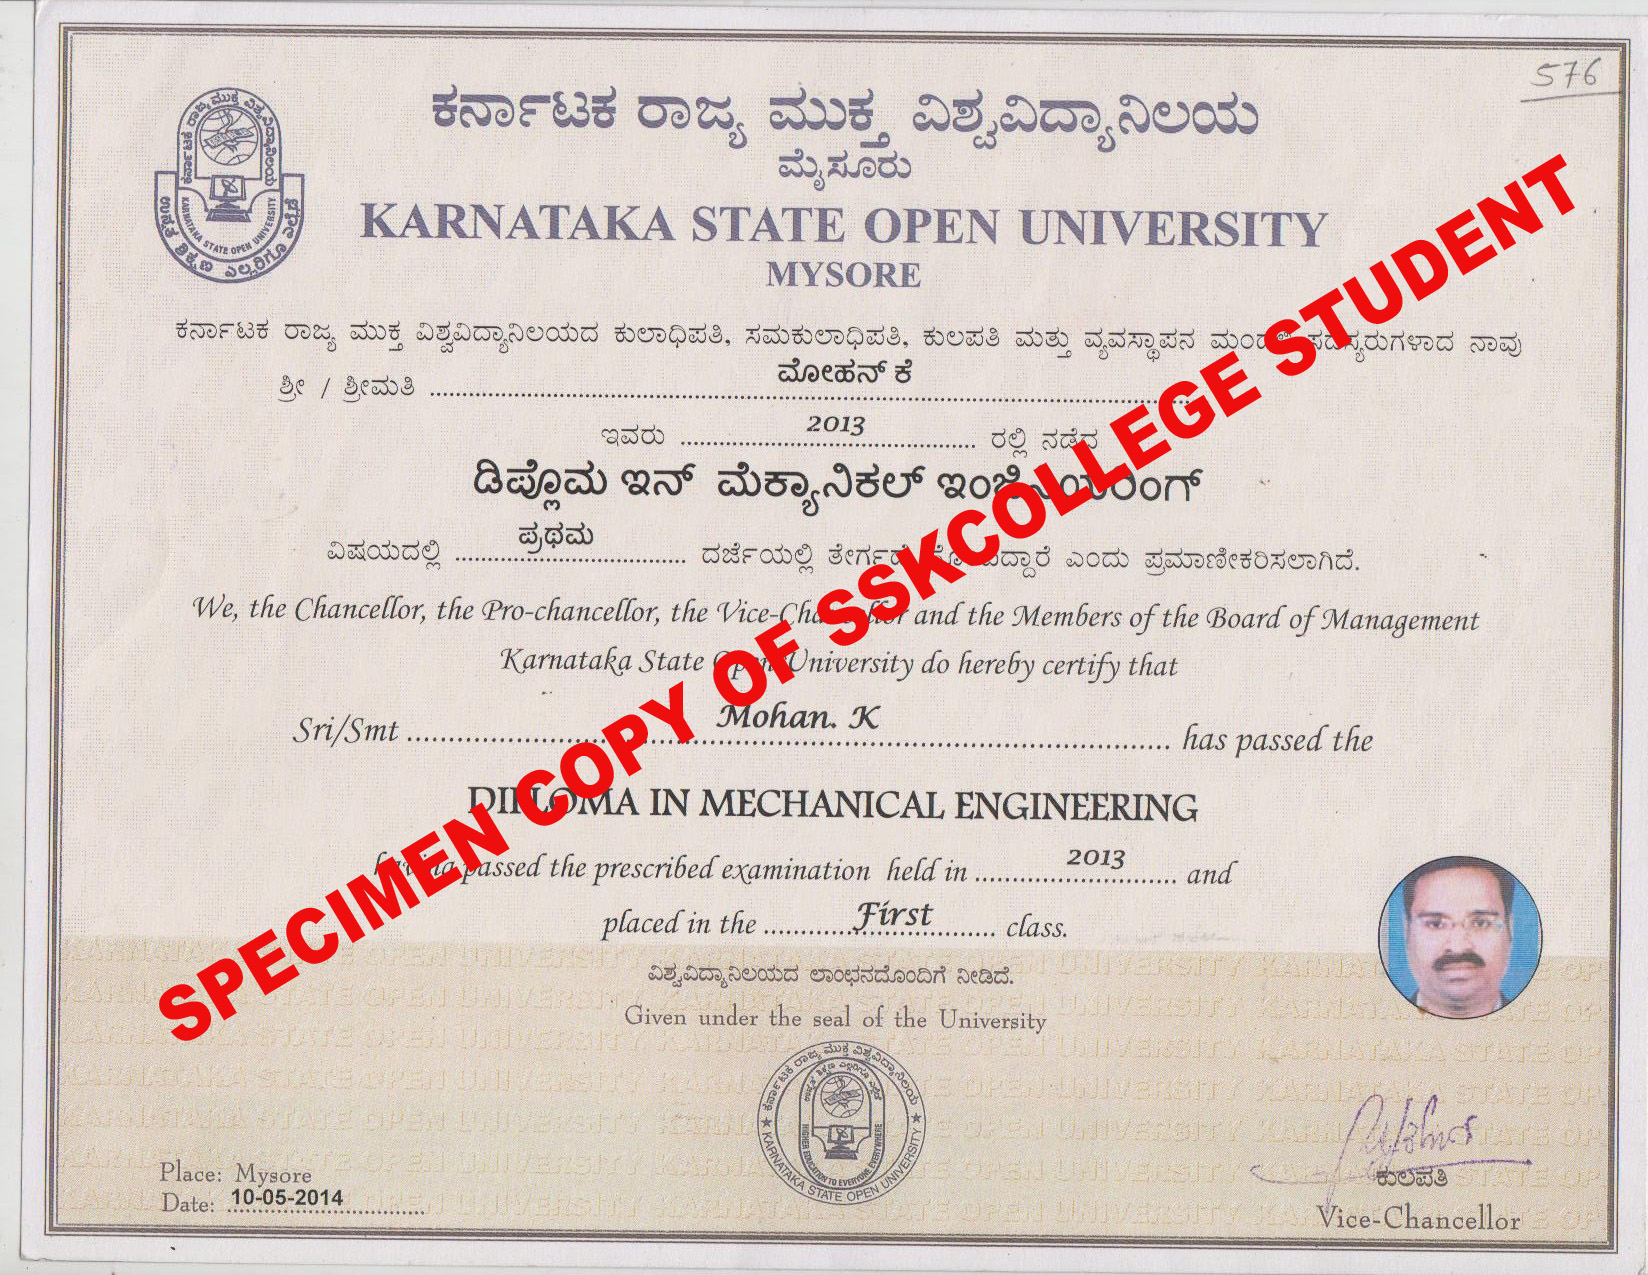 76 karnataka state open university engineering diploma karnataka engineering karnataka state diploma open university education university distance open ssk karnataka college state yelopaper Images